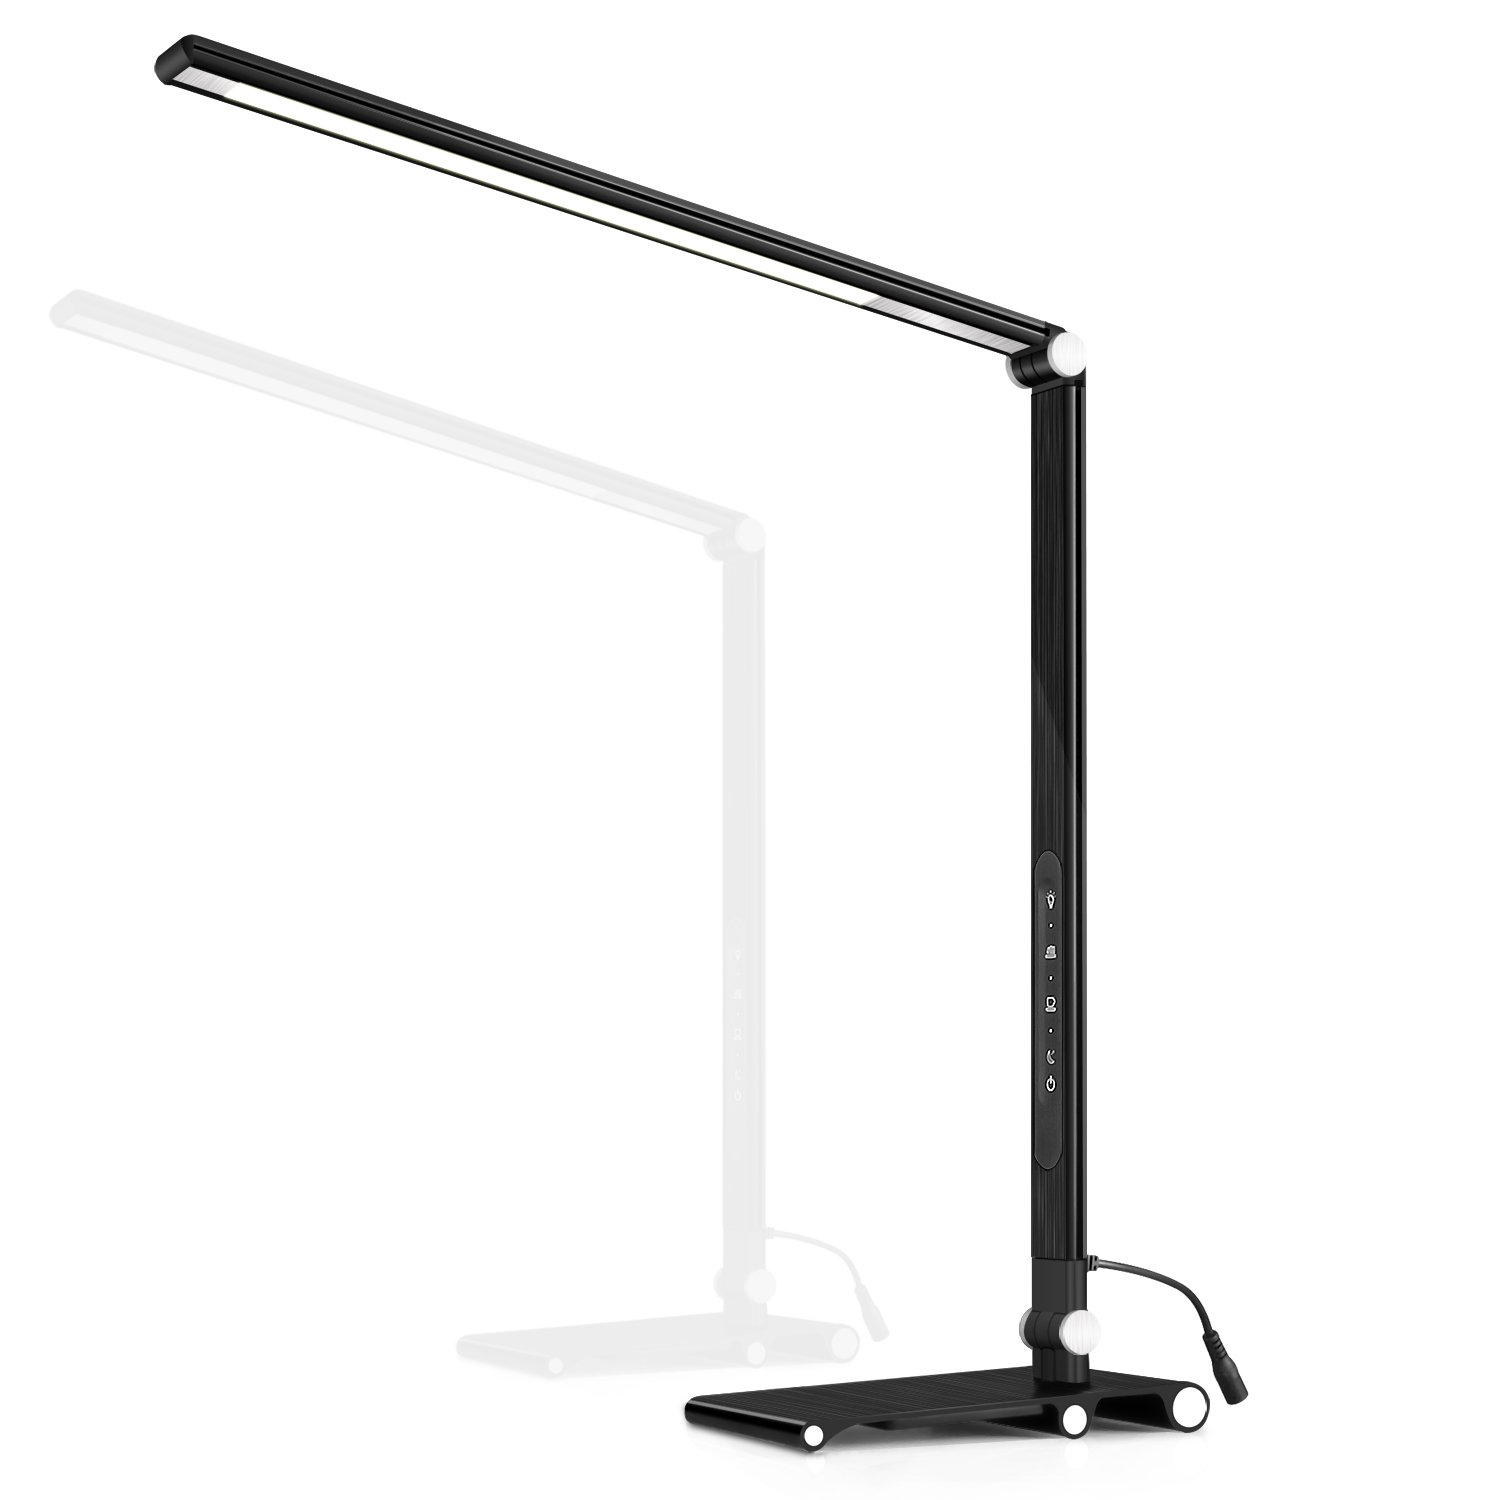 LED Dimmable Desk Lamp, OCOOPA Stylish Metal Office Lamp, Eye Protection Office Light, 7 Brightness Levels, Memory Function, Touch Control, 10W, 1000 Lumens, Piano Black